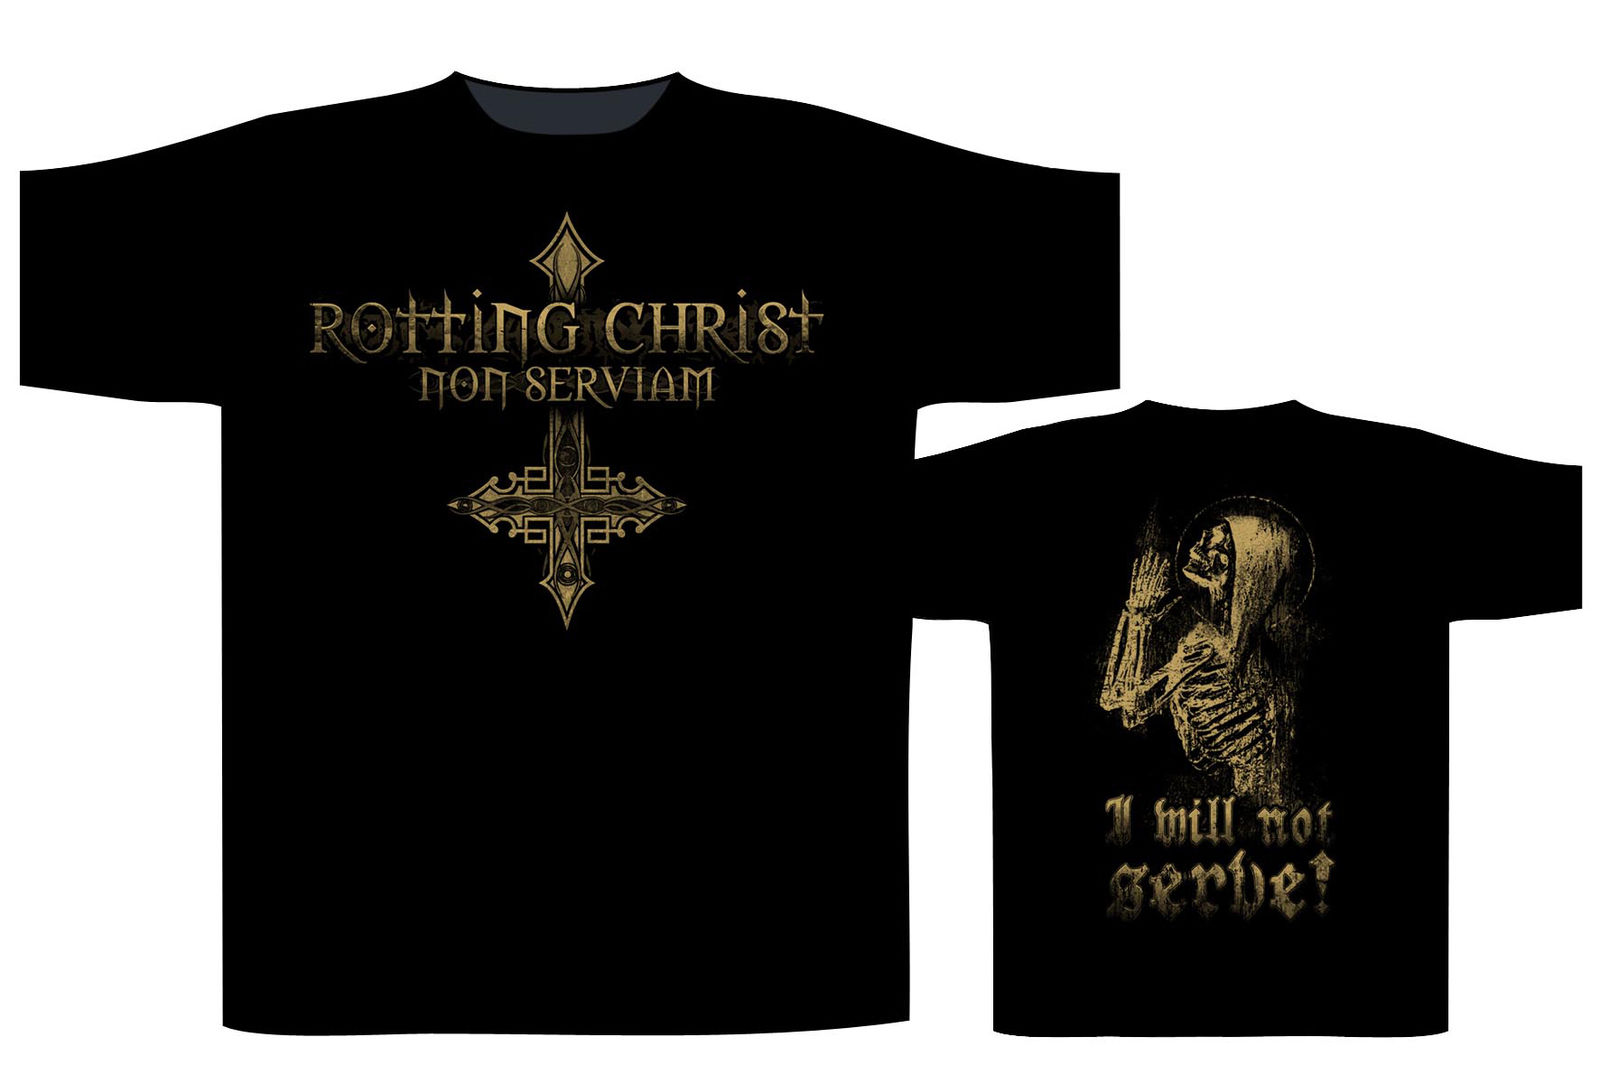 Rotting Christ Non Serviam T-Shirt - NEW & OFFICIAL Newest 2018 Fashion Stranger Things T Shirt Men